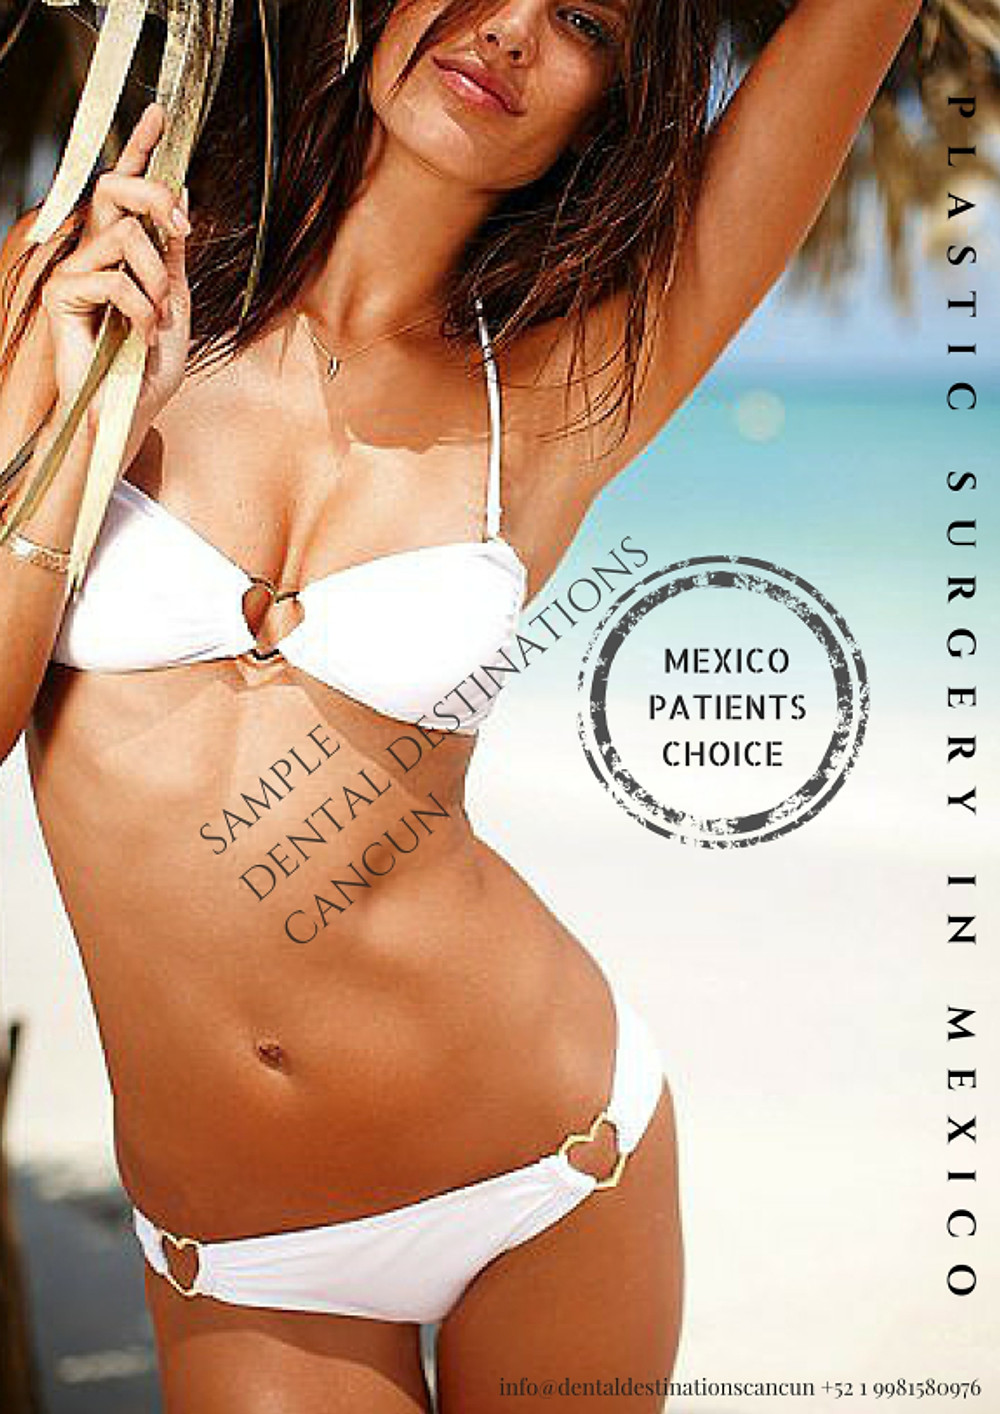 Medical Vacation Cancun , Medical Tourism Mexico #Medicalvacationcancun